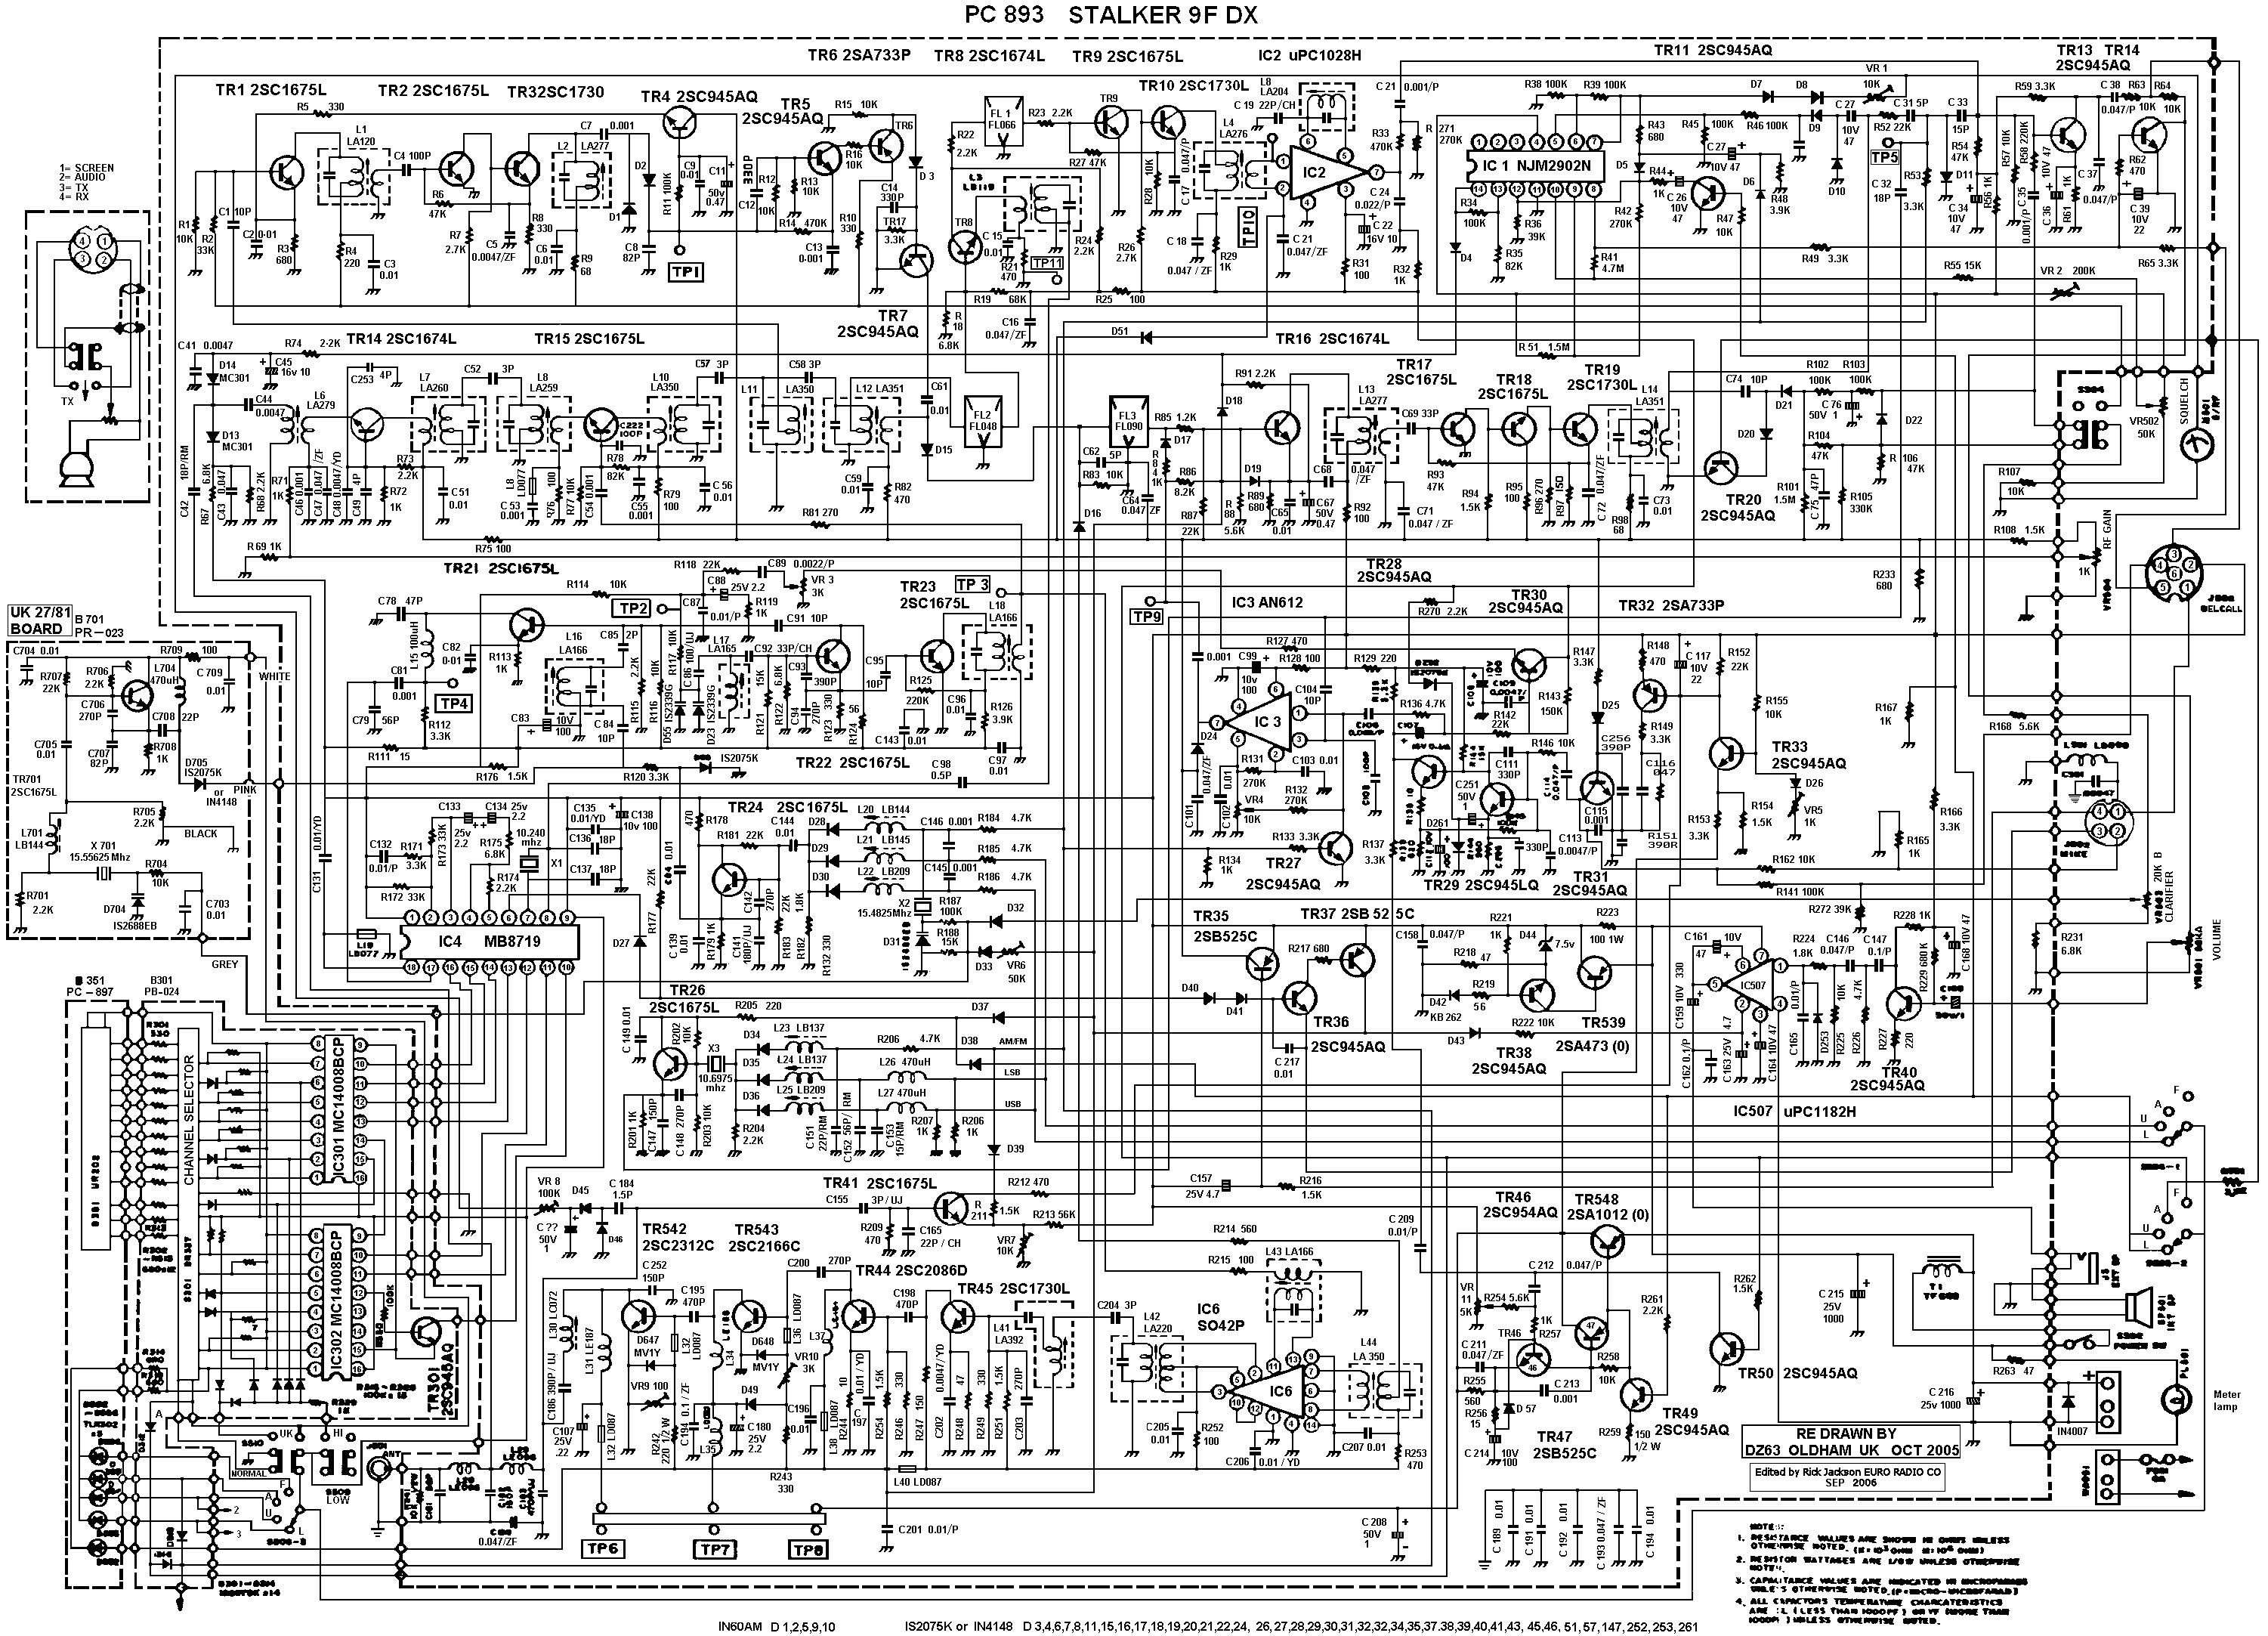 381f91856c8e3d5a8624ba977cca4625 image result for circuit diagram client_iot_平面 pinterest circuit diagram pdf at aneh.co